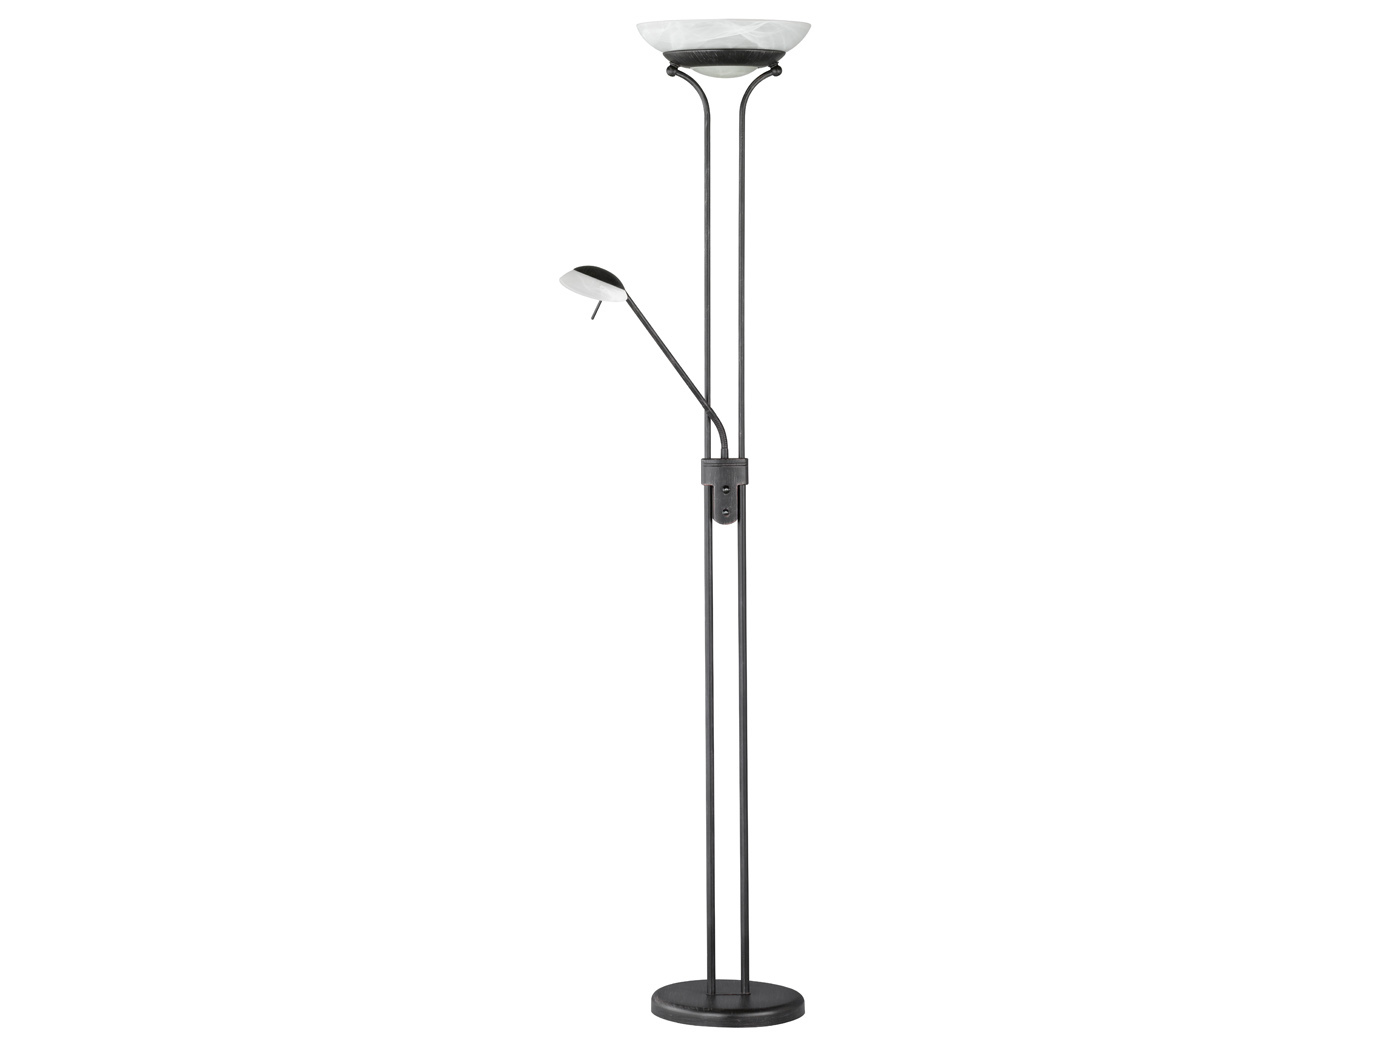 Standleuchte Led Dimmbar Led Stehlampe Mit Leselampe Rostfarbig H 182cm Dimmbar Wohnzimmerlampen Diele